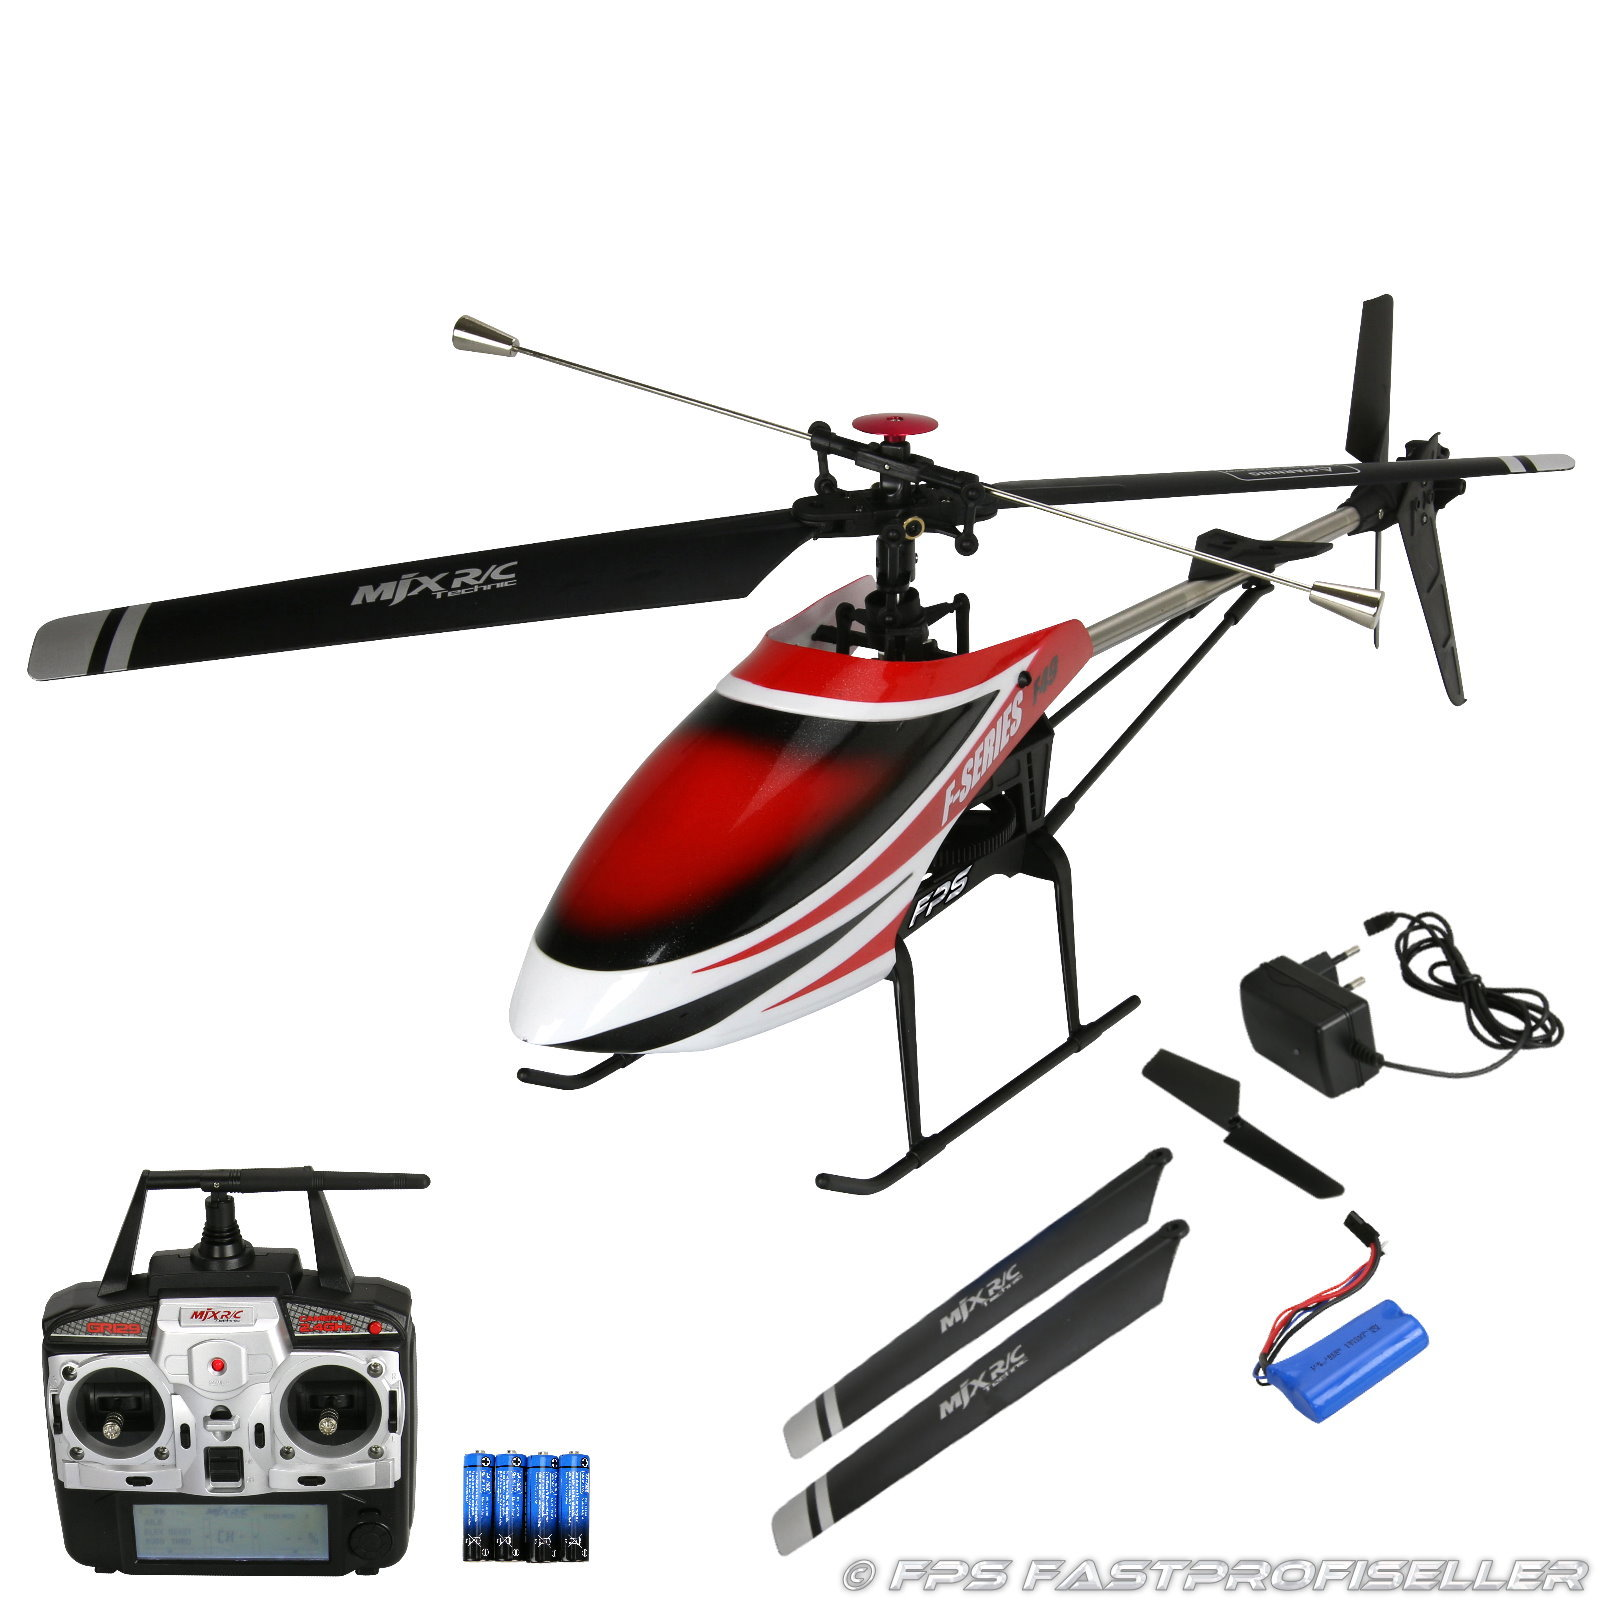 mjx f649 f49 rc helikopter 2 4 ghz xxl single rotor. Black Bedroom Furniture Sets. Home Design Ideas